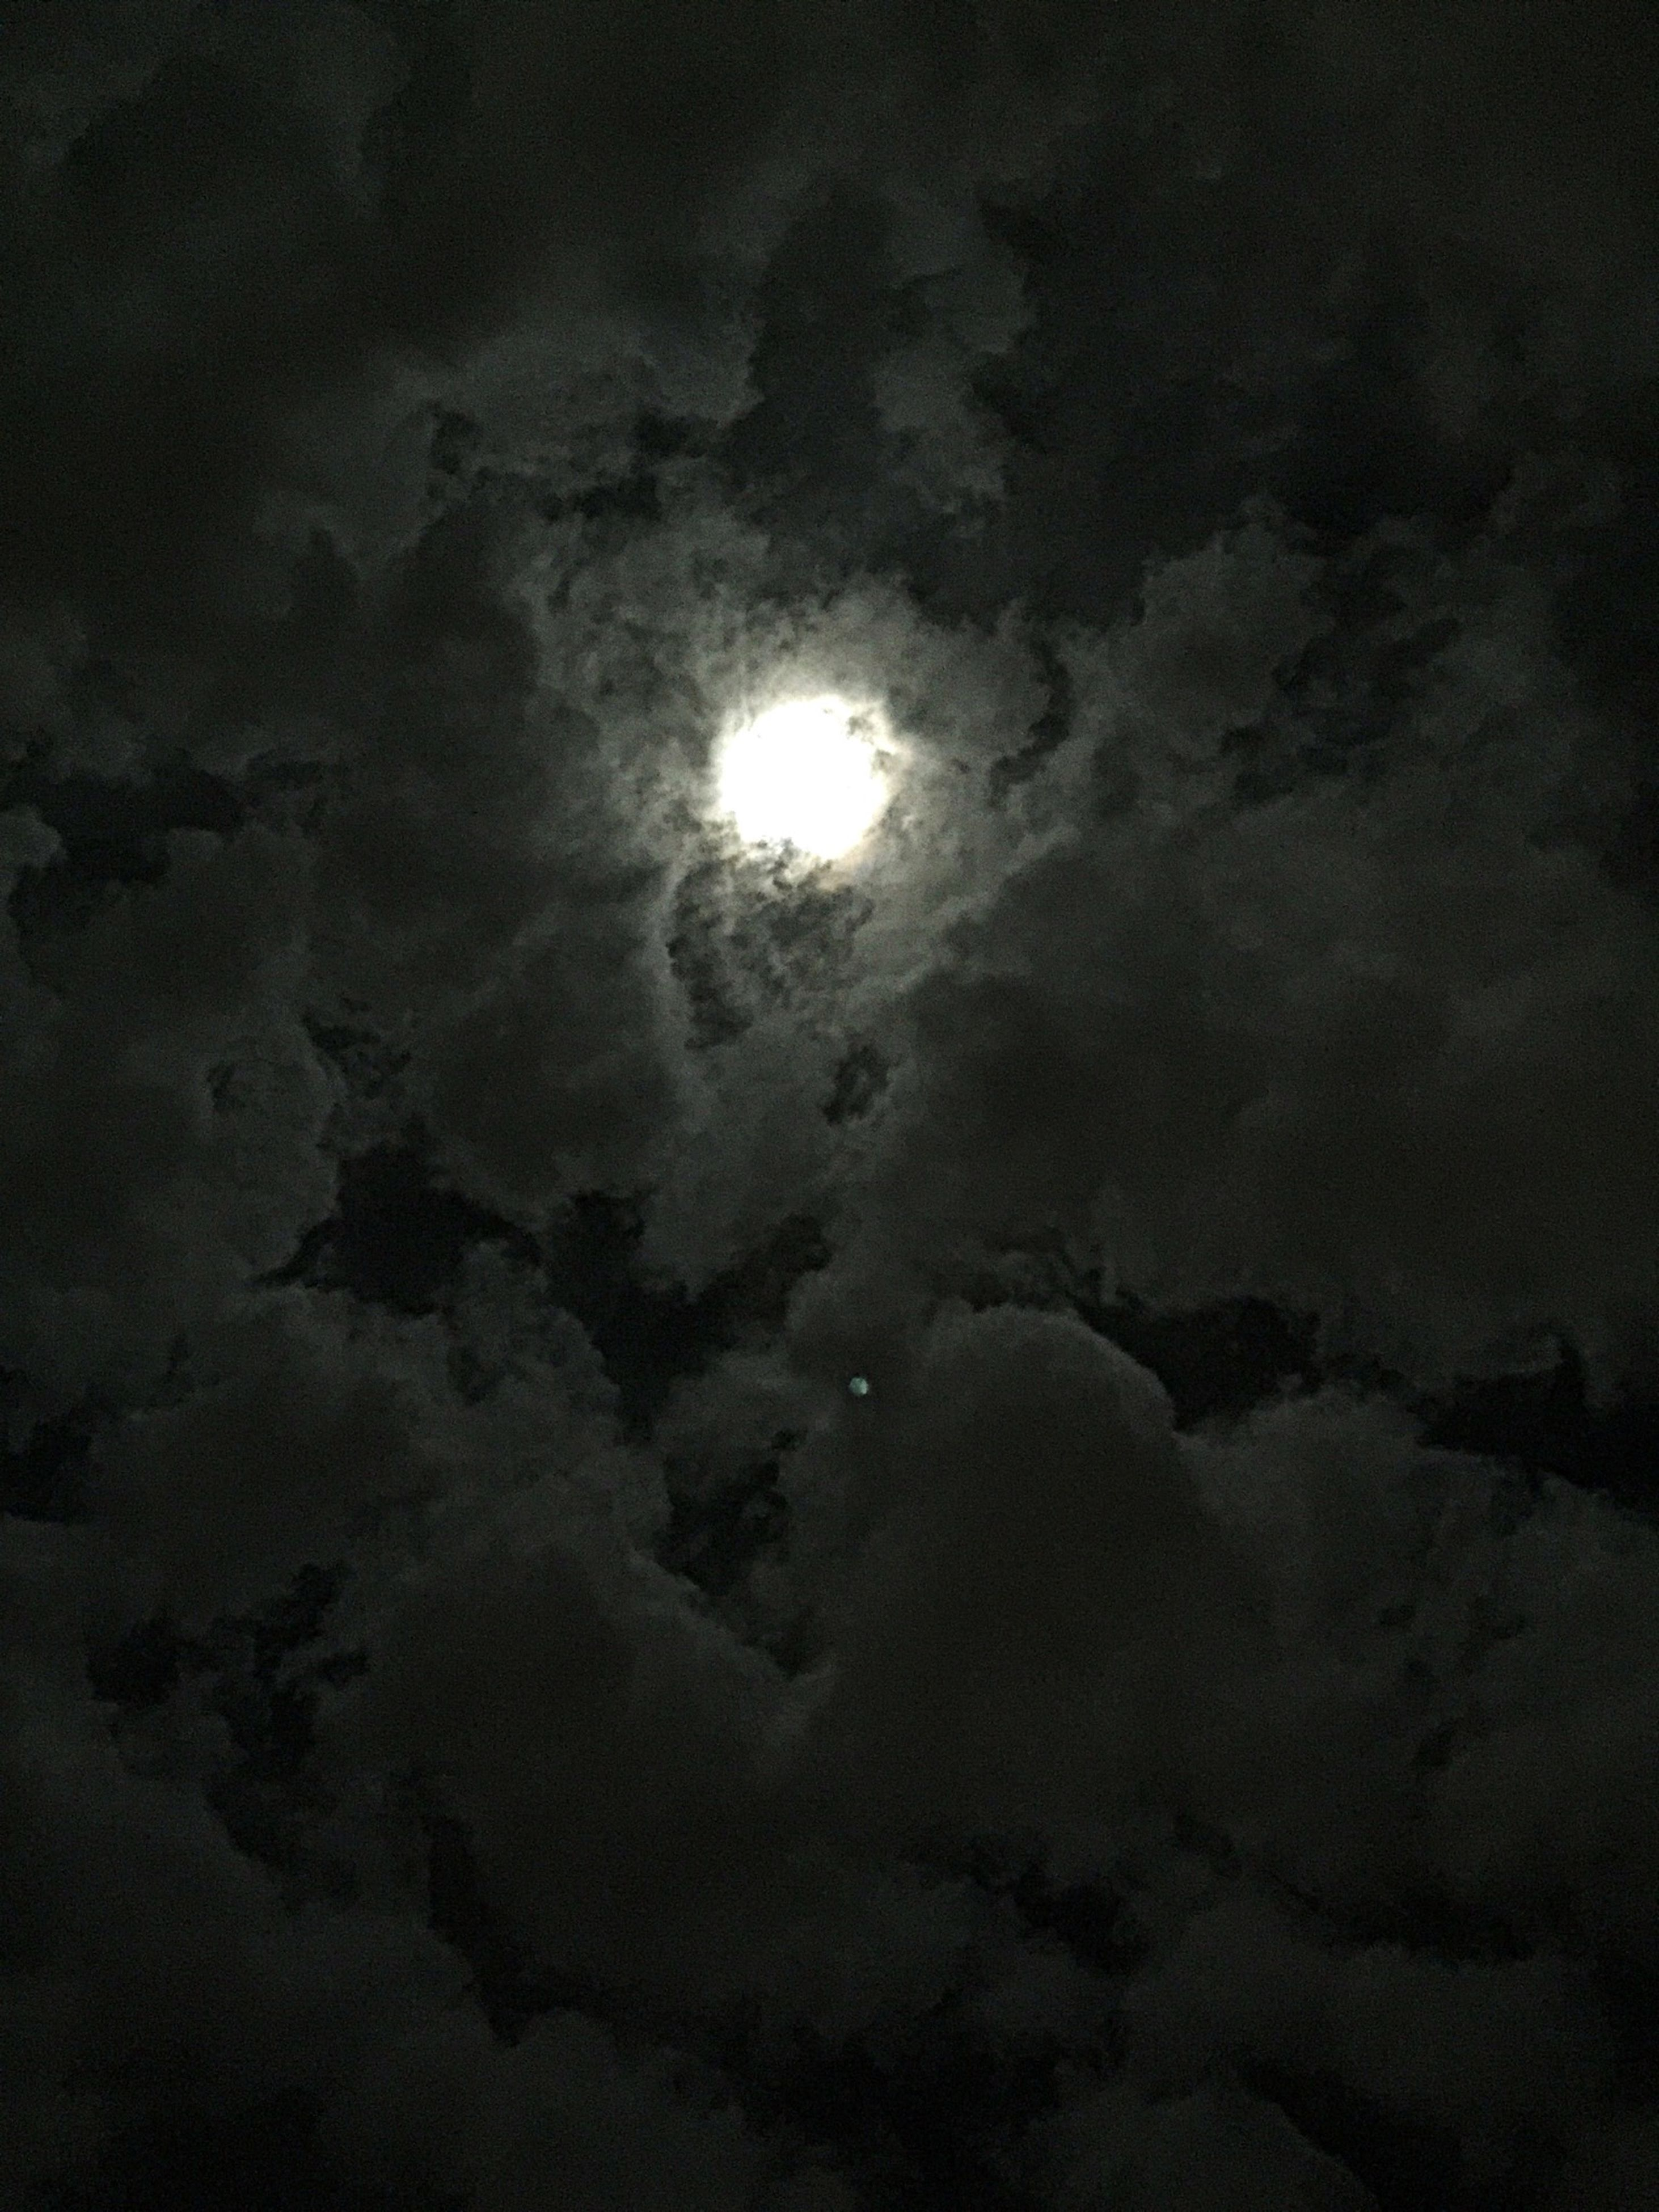 sky, night, beauty in nature, tranquility, scenics, low angle view, moon, nature, cloud - sky, tranquil scene, weather, astronomy, sky only, cloudy, idyllic, dark, majestic, backgrounds, no people, overcast